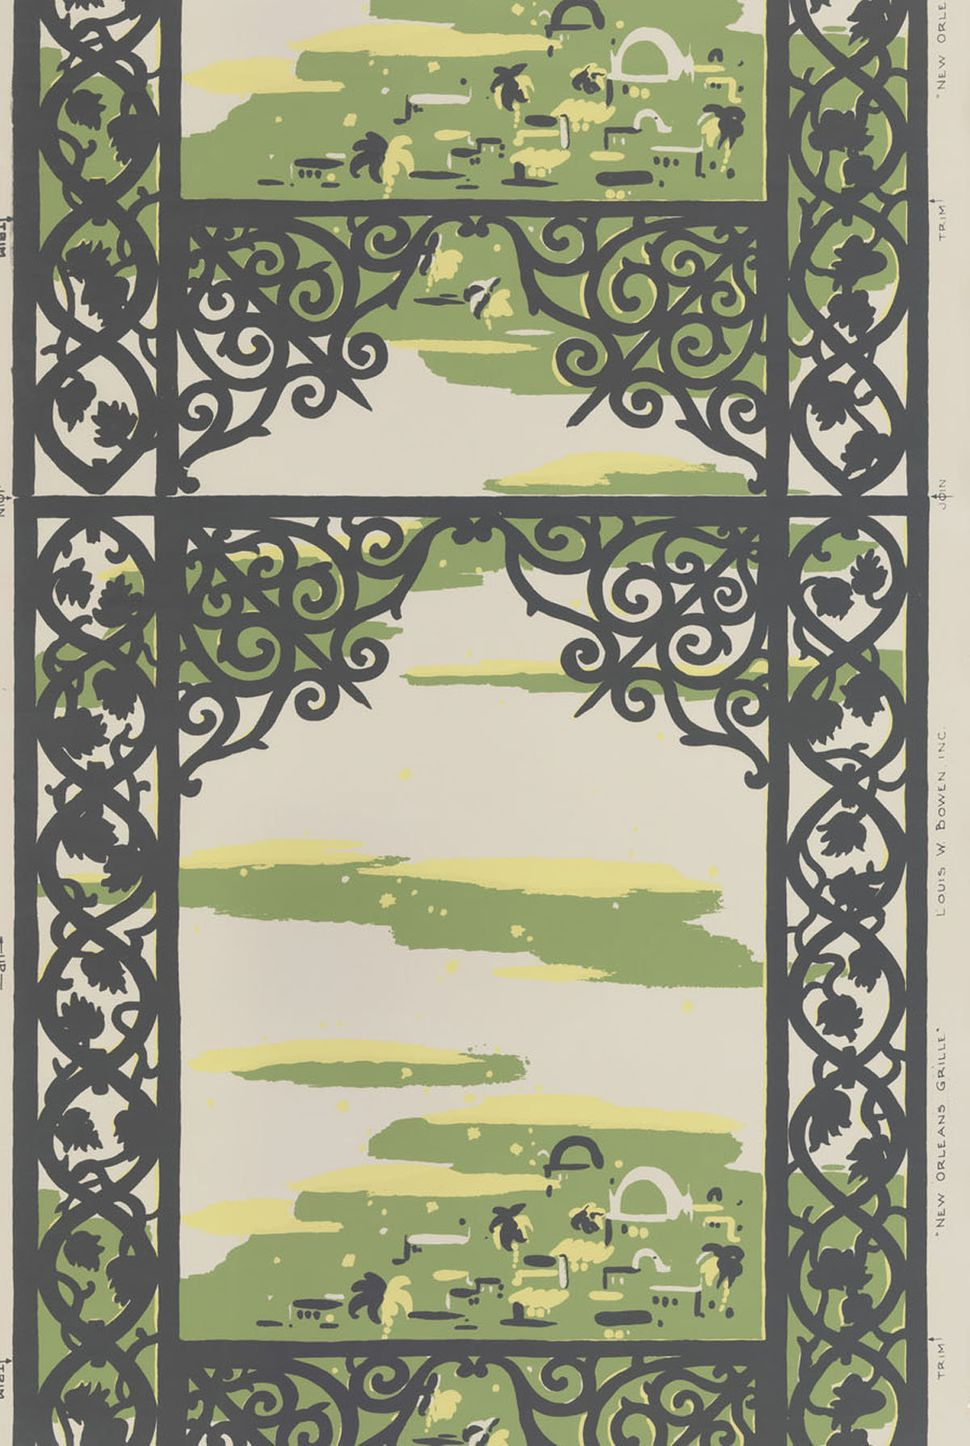 Unused roll of wallpaper. Dark grey scrolled trellis framing an abstract garden scene in green and yellow on cream ground. Lo